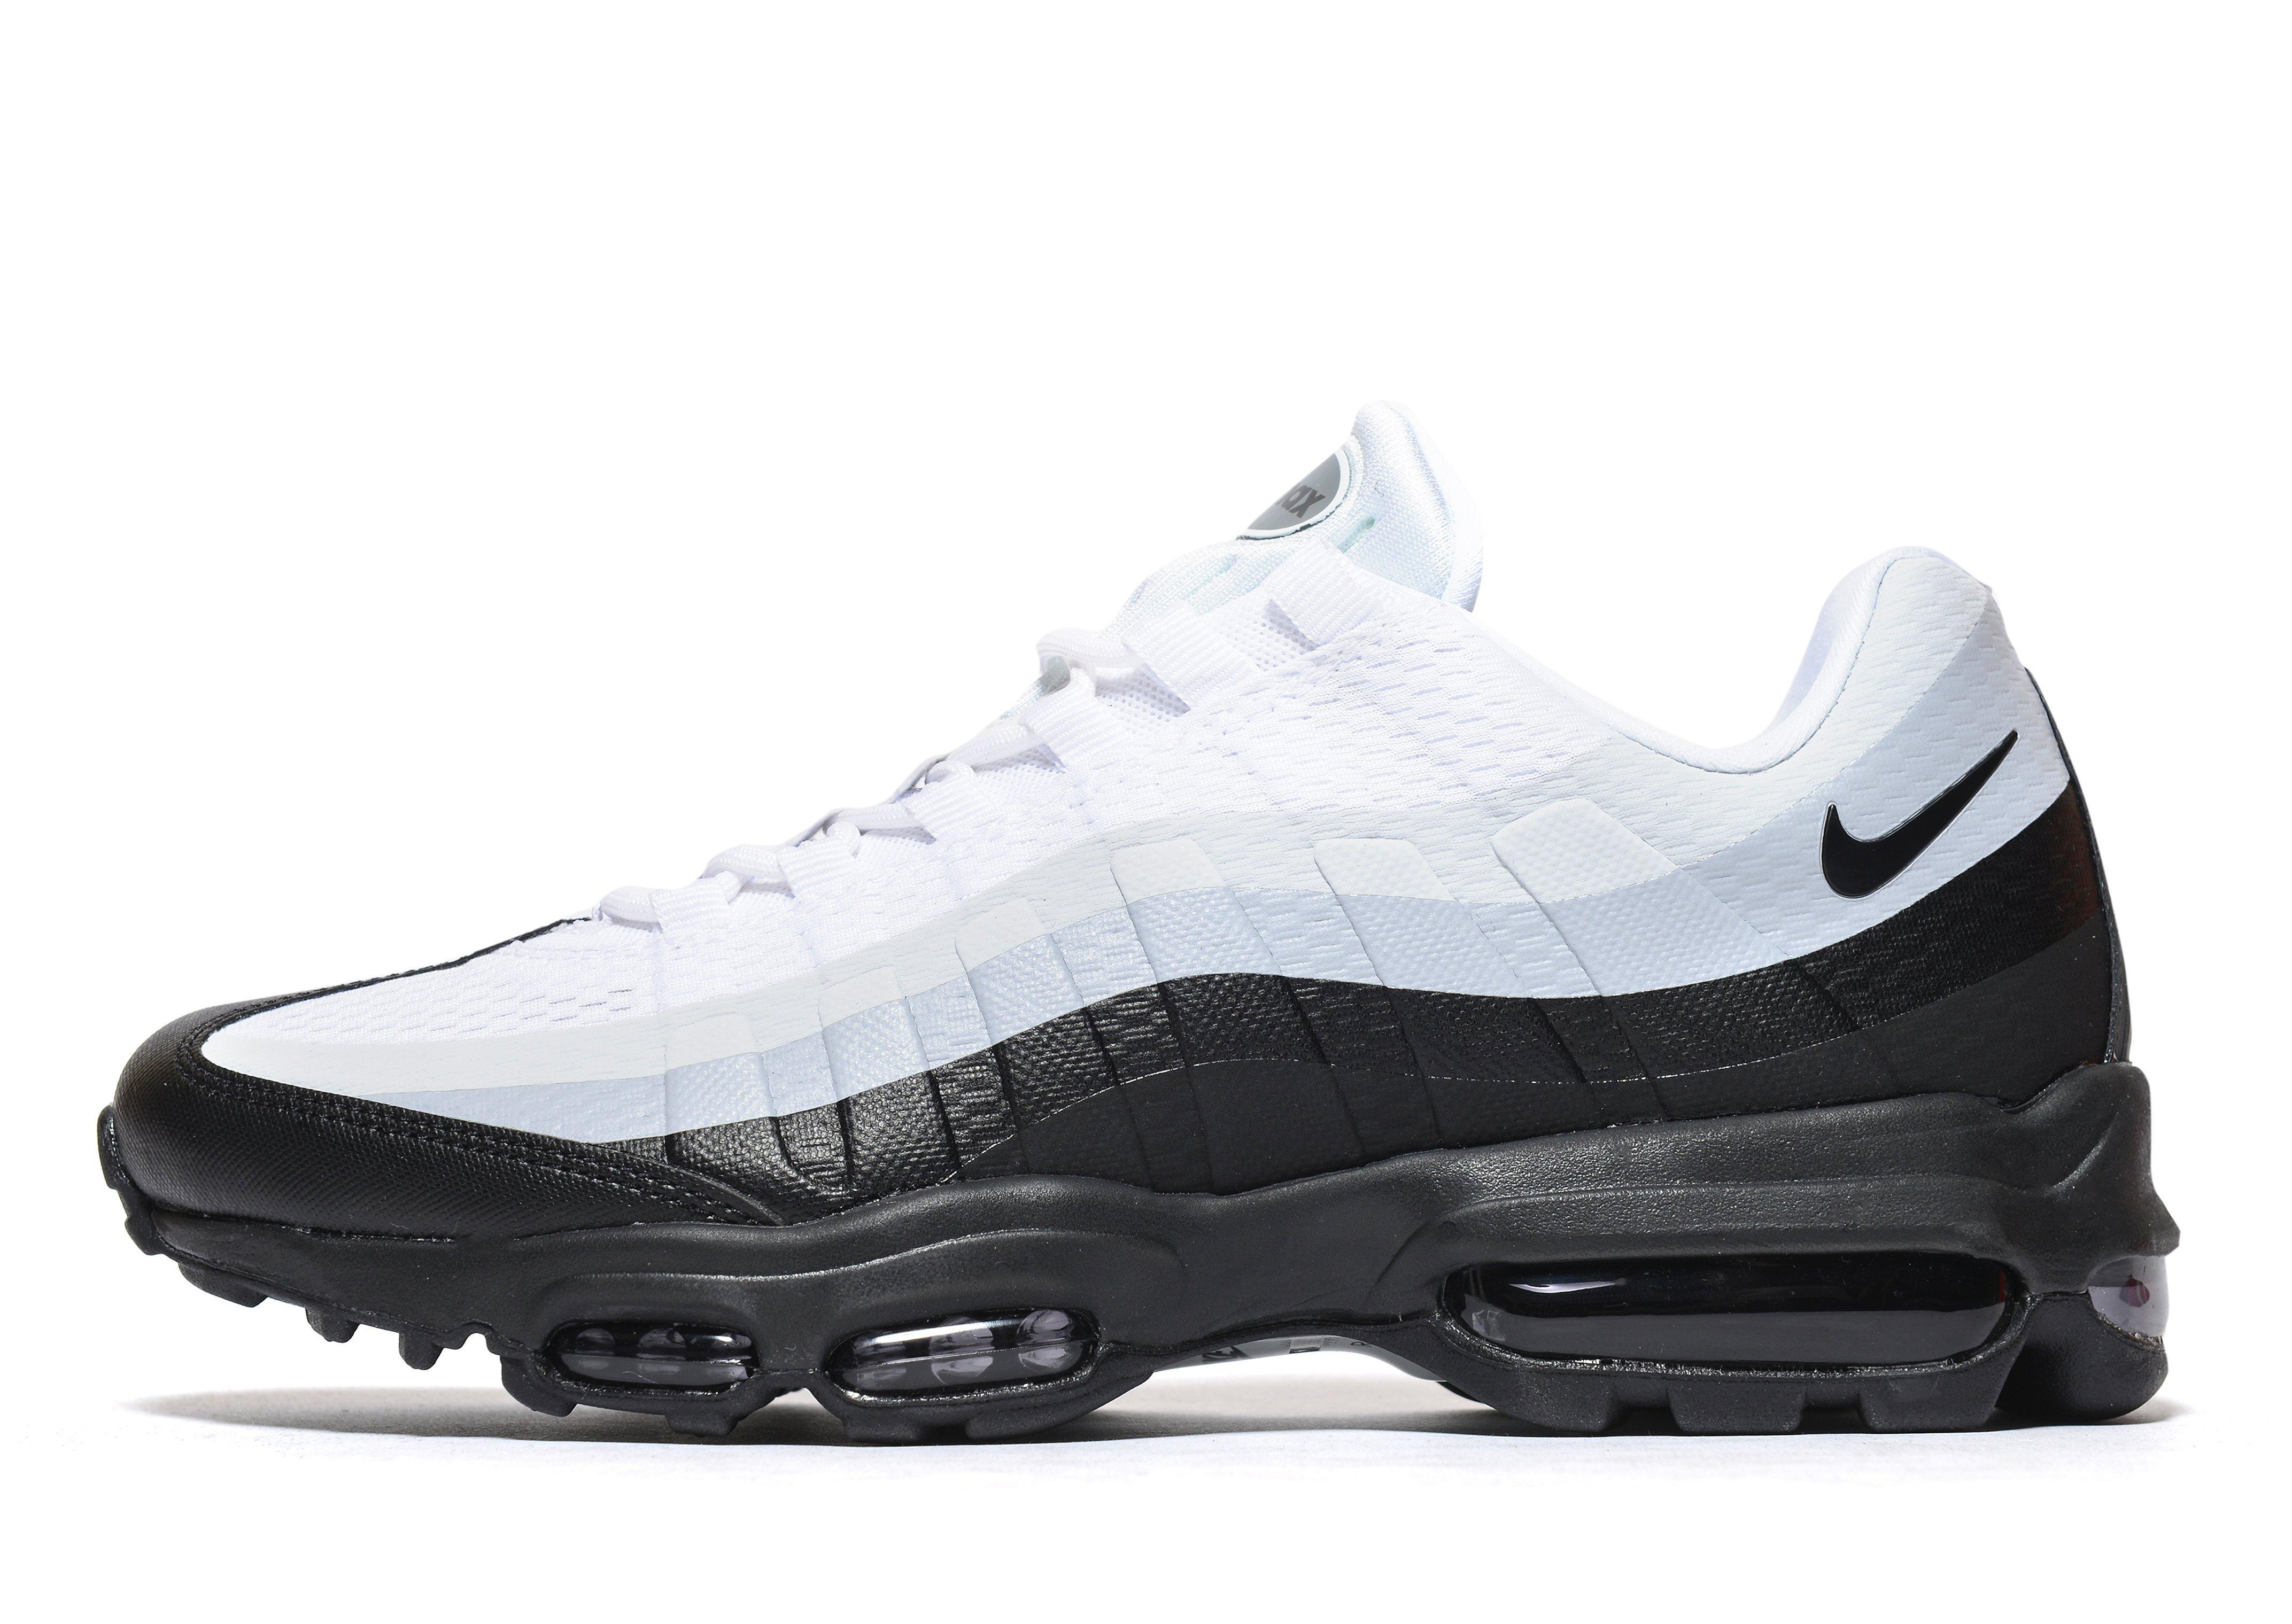 c1790358f8c58 Nike Air Max 95 Ultra Essential in White for Men - Lyst